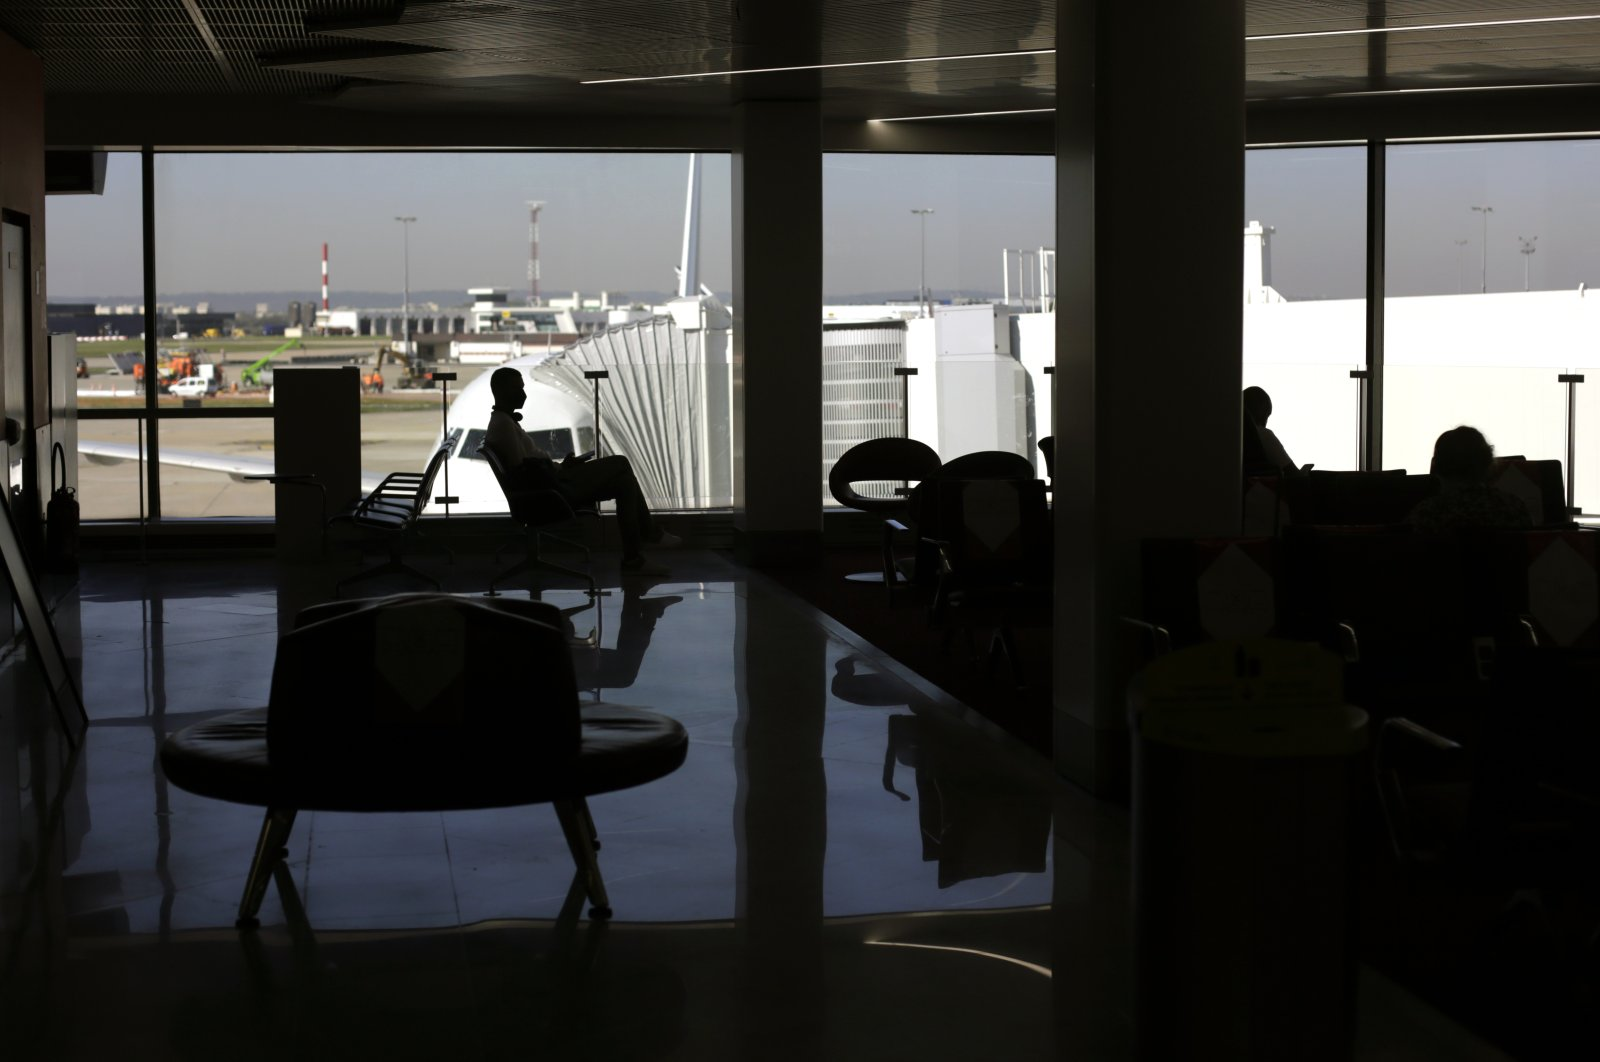 A passenger waits to board at the Paris-Orly airport, in Orly, south of Paris, France, April 27, 2021. (AP Photo)